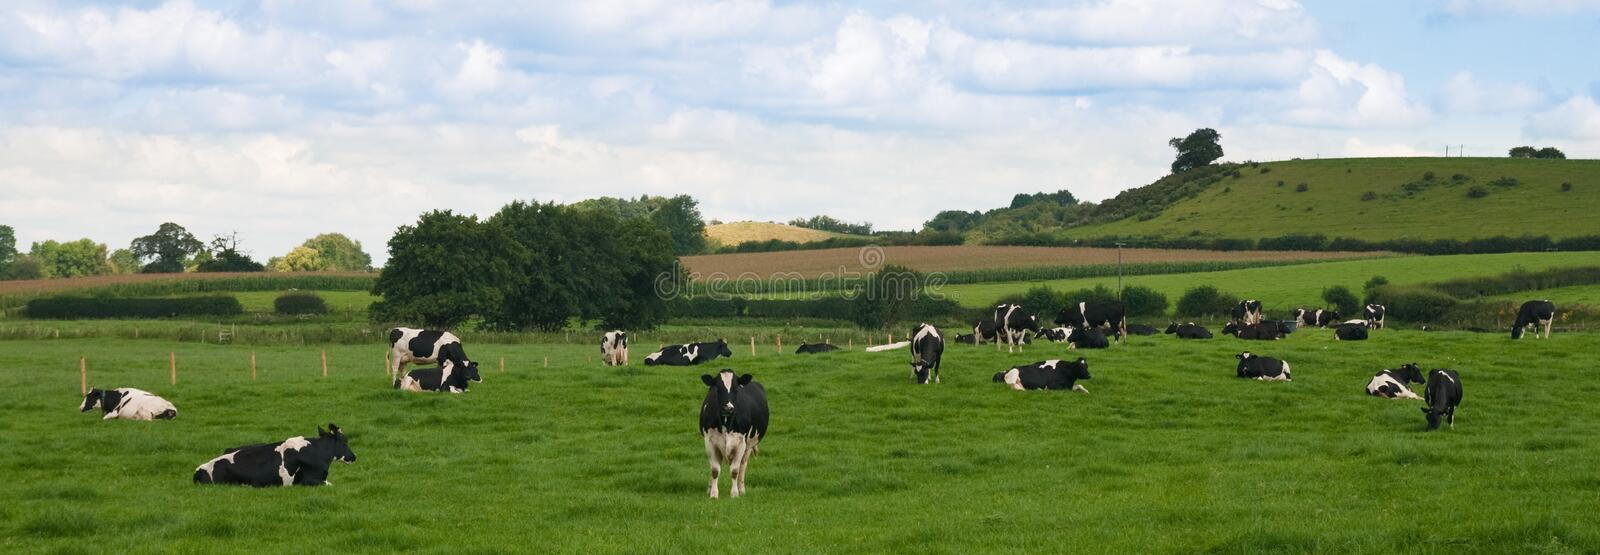 Cattle Panorama royalty free stock images